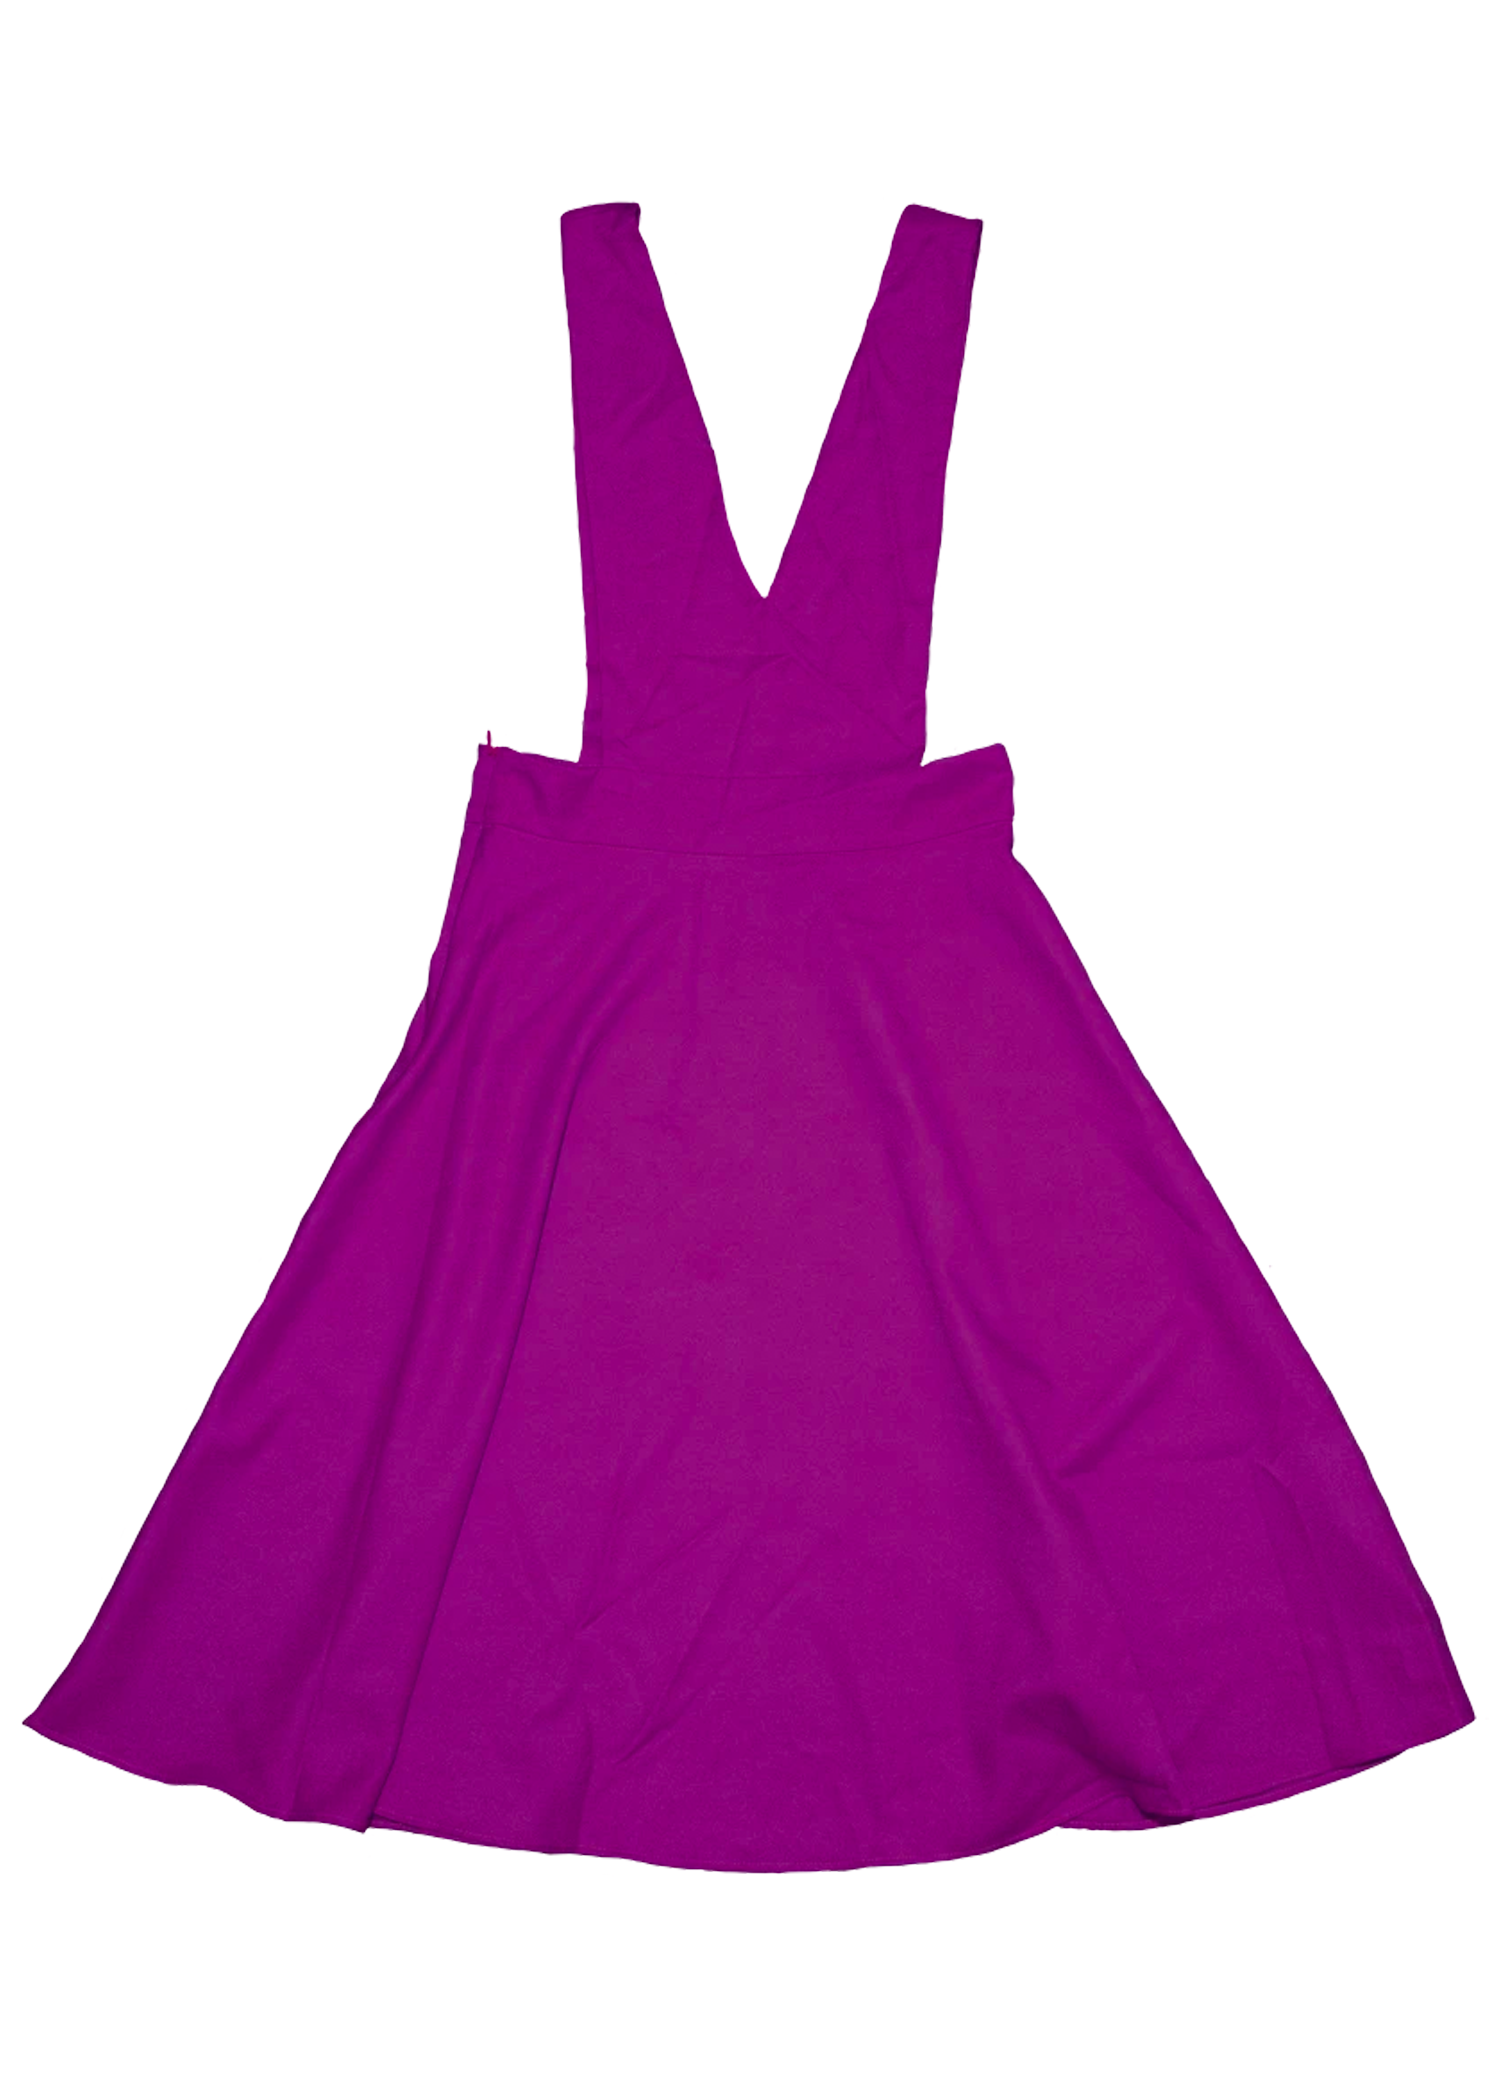 V-Cut Pinafore Skirt in Purple